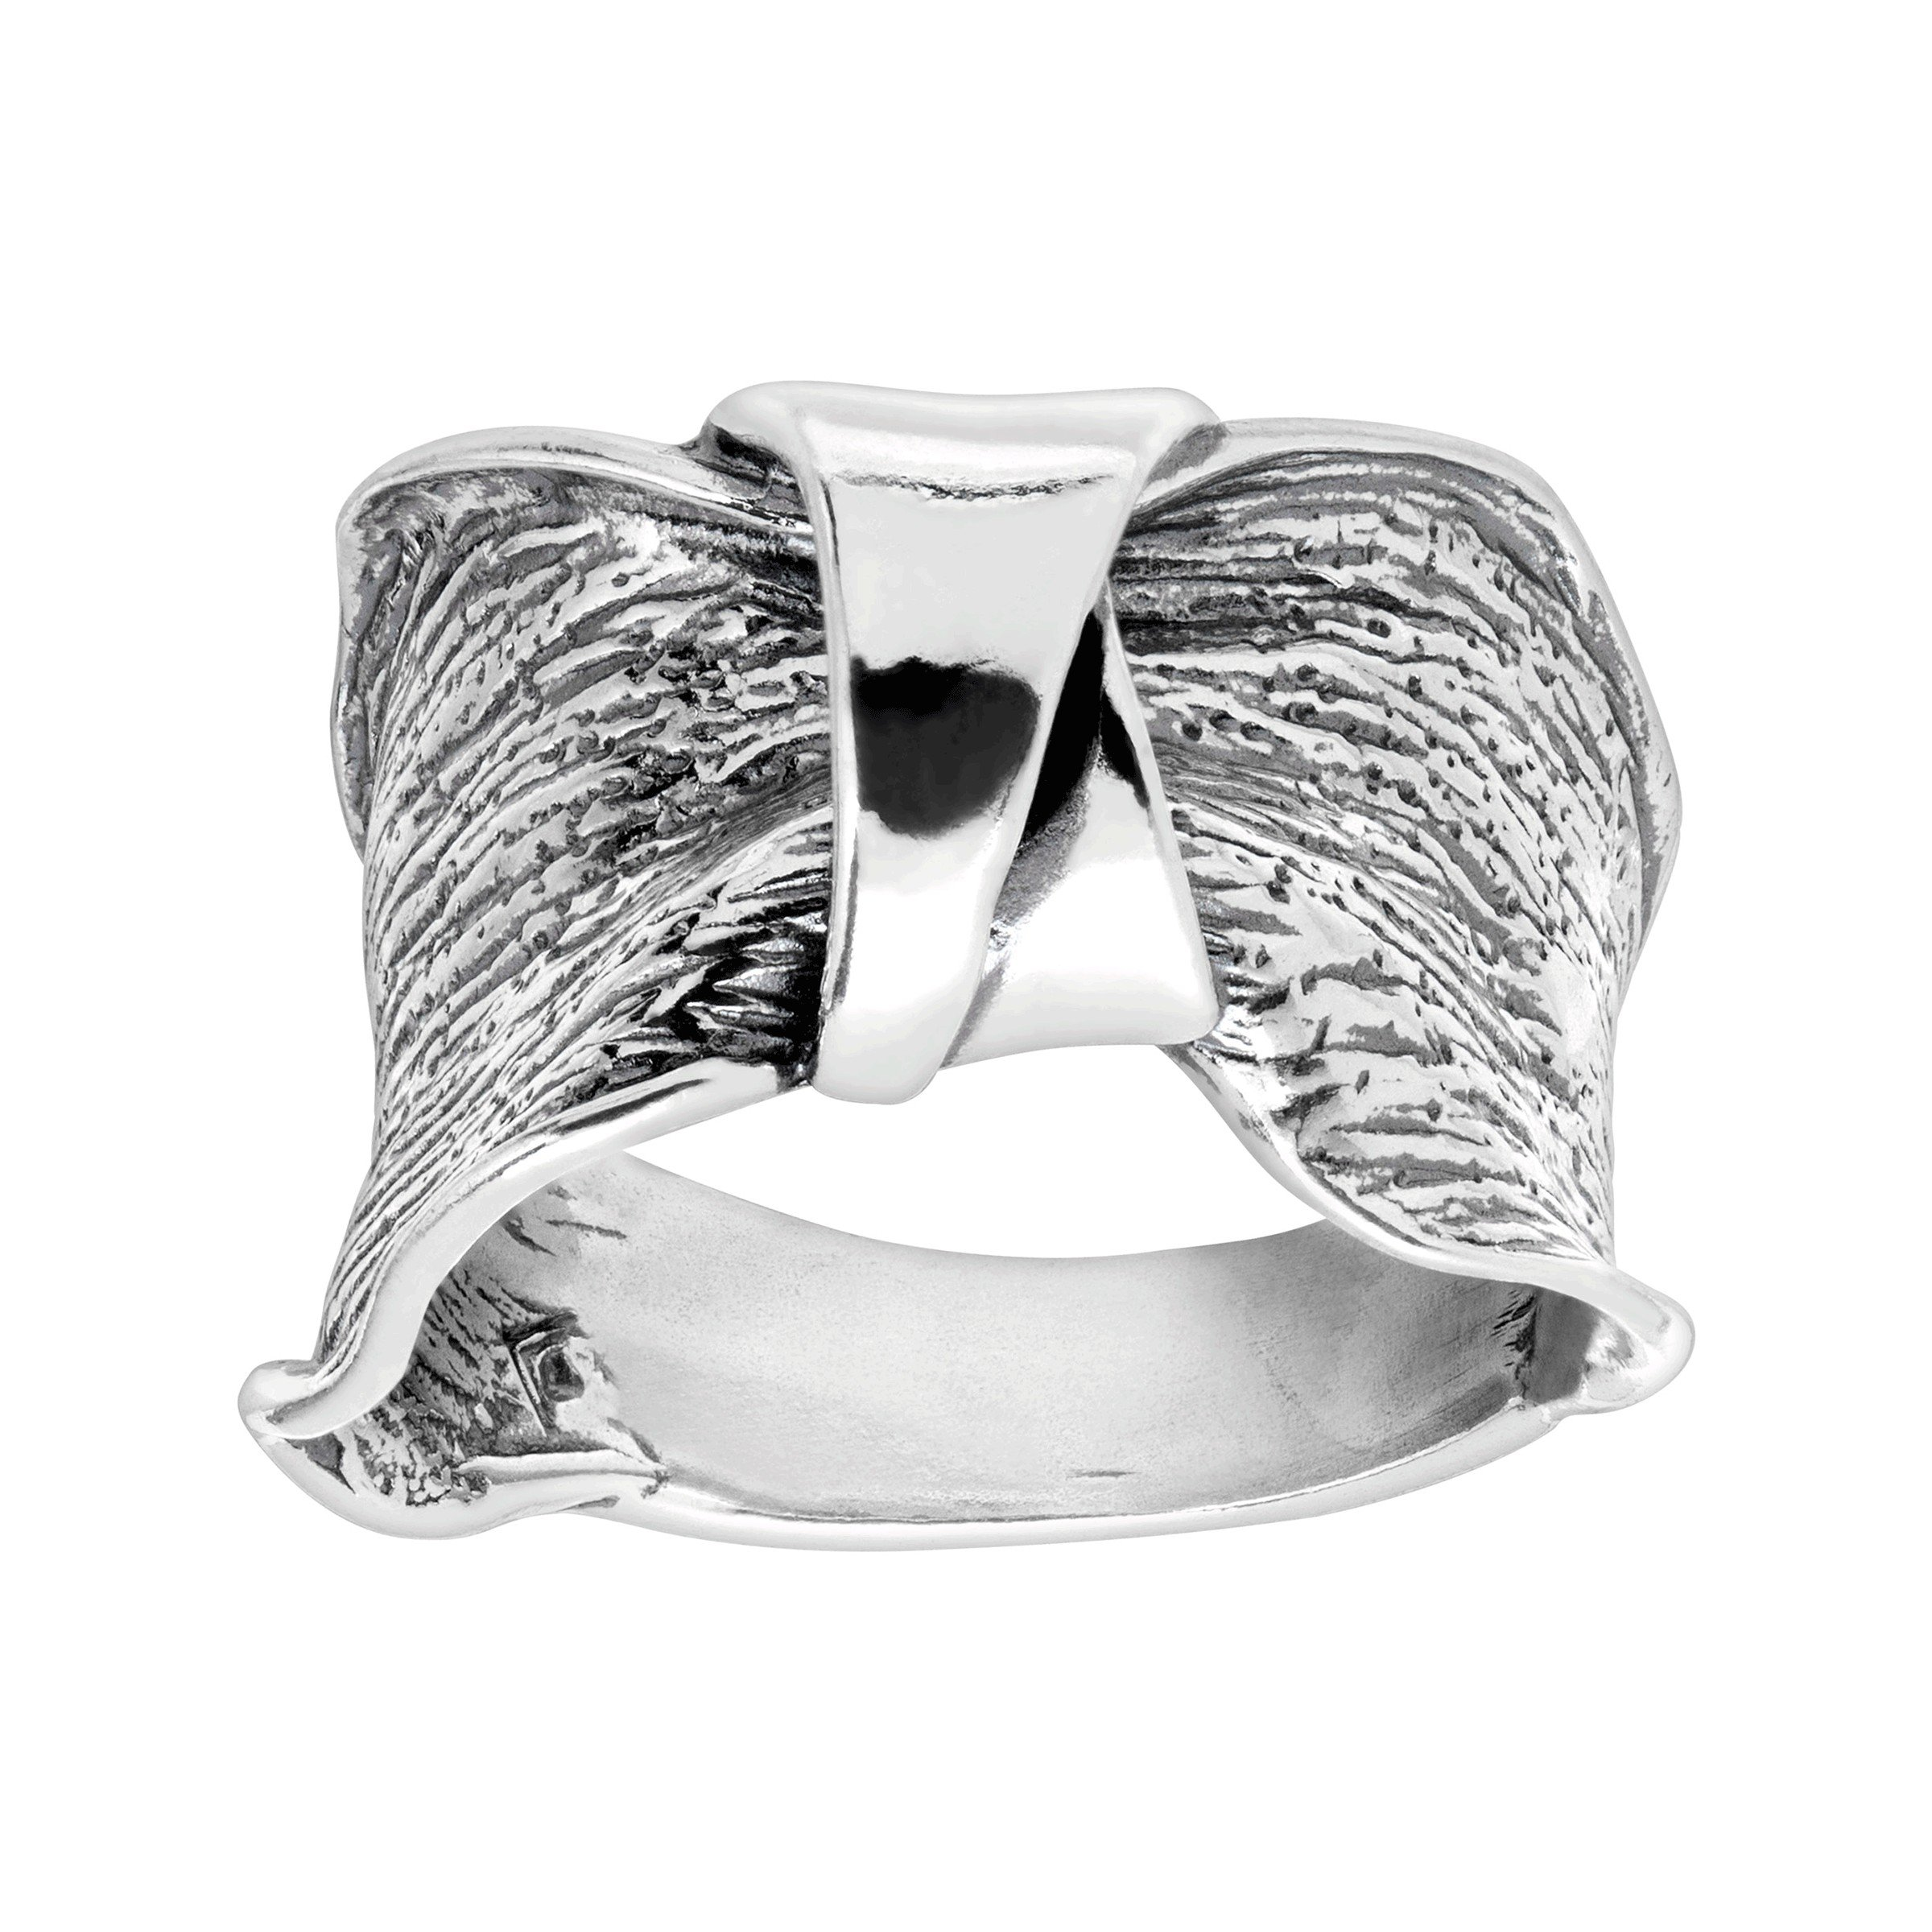 Silpada 'Bridge the Gap' Ruched Ring in Sterling Silver